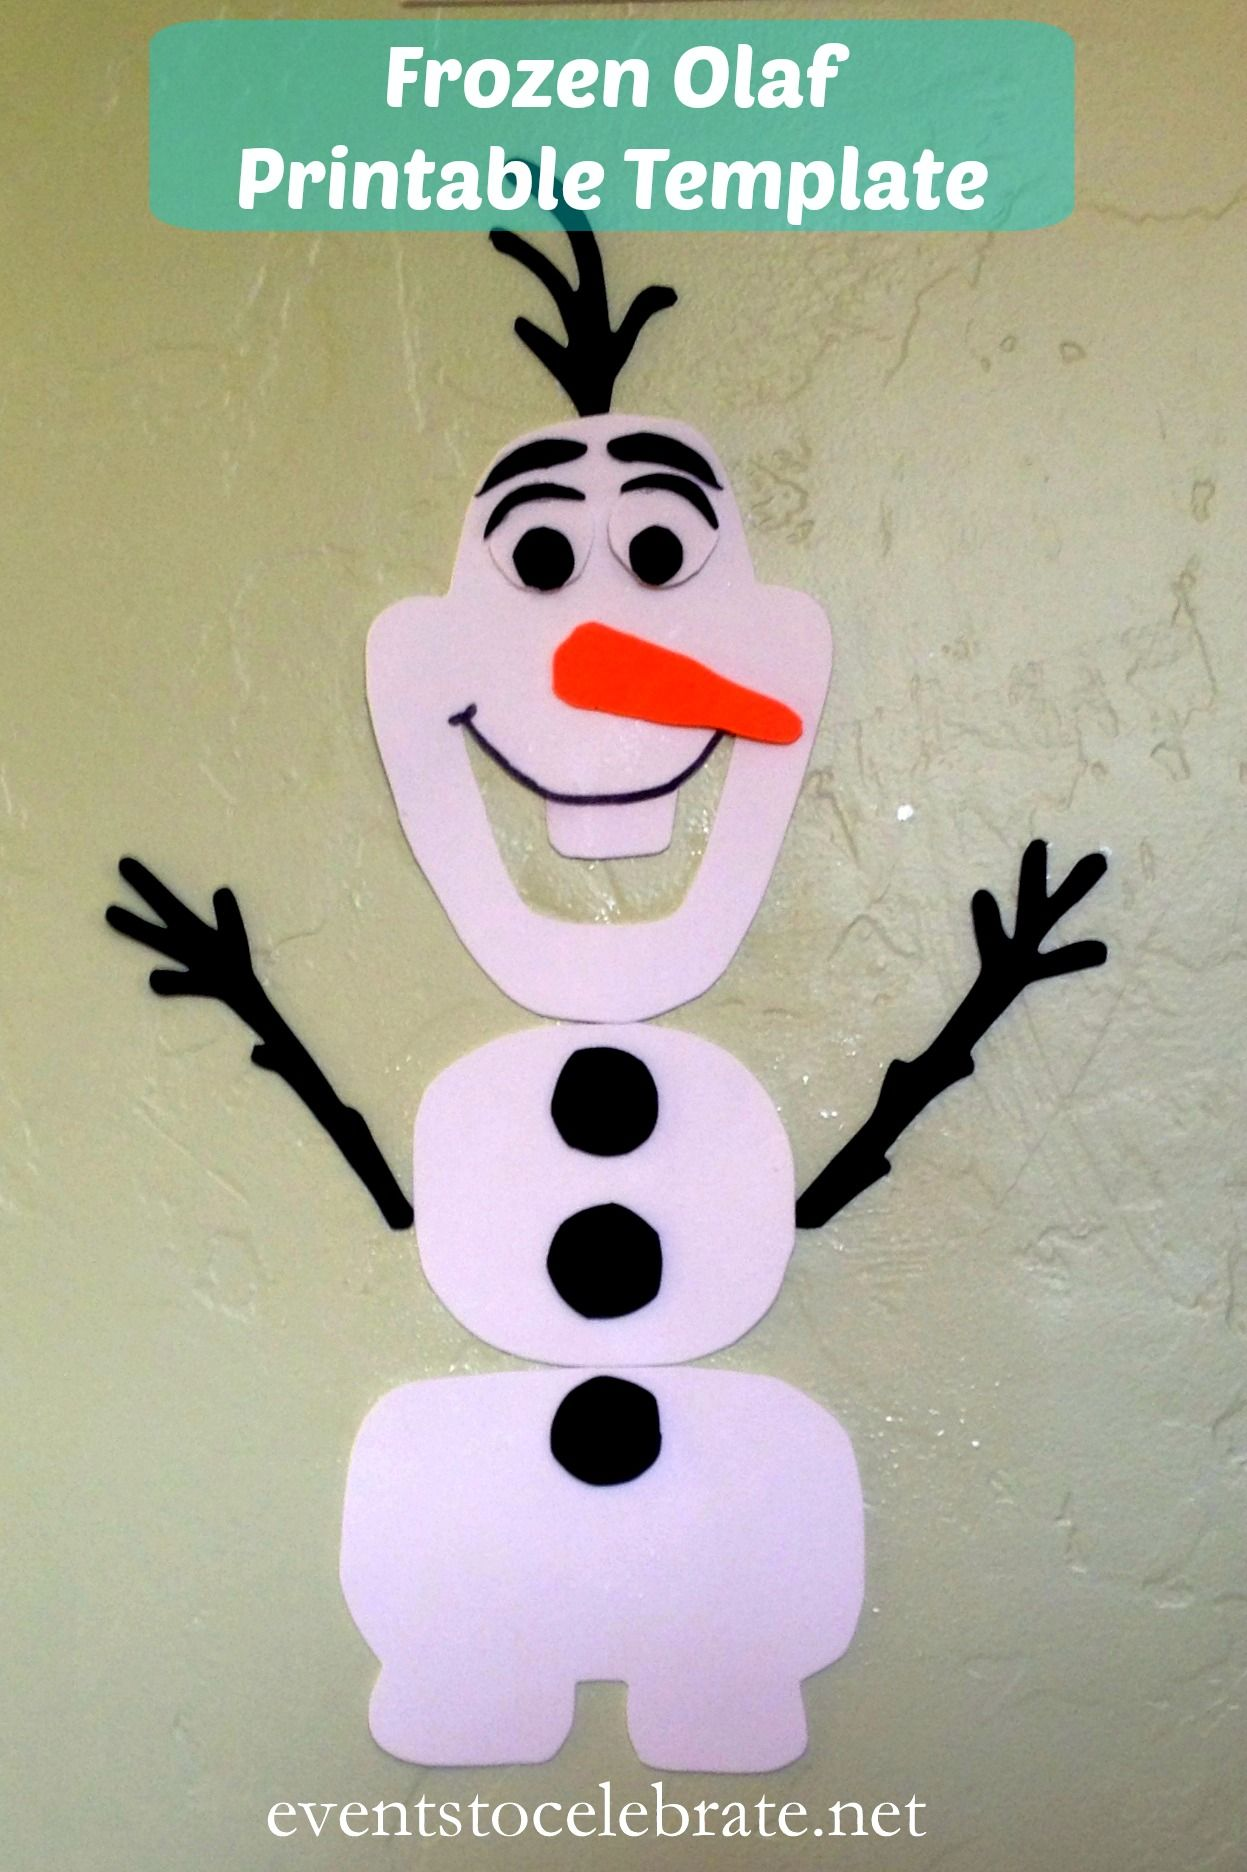 Frozen Olaf Template | Pinterest | Olaf, Template and Craft